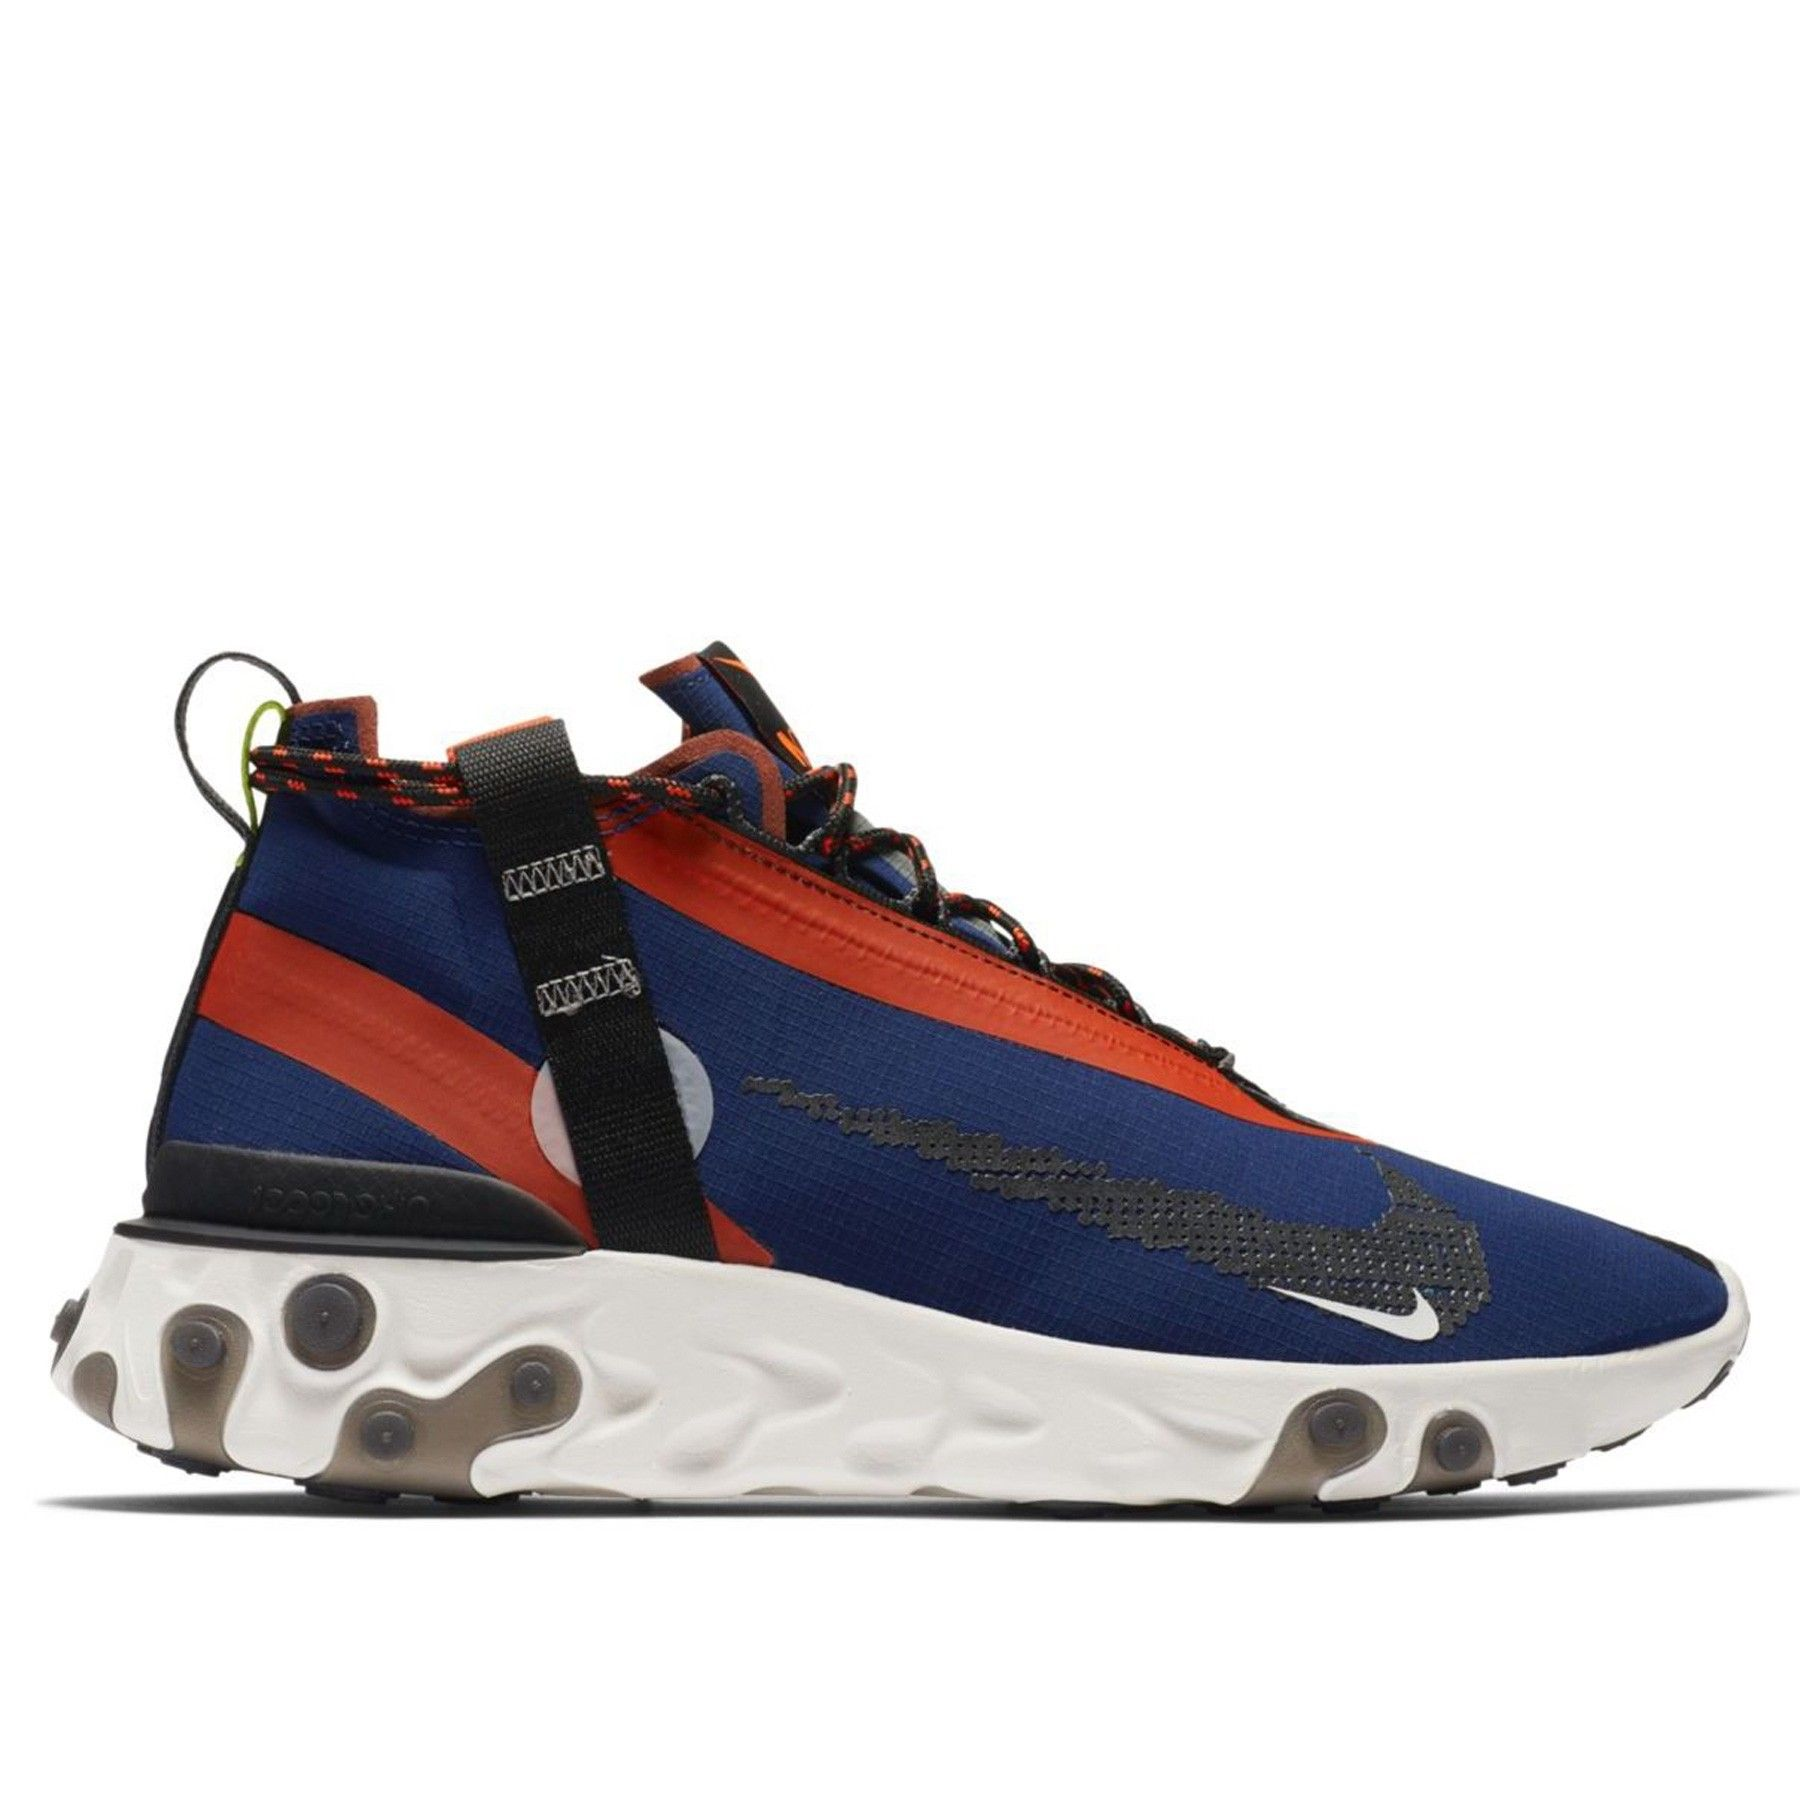 b7f420a7ea82 Nike React Mid WR ISPA (AT3143-400) Designer Shoes